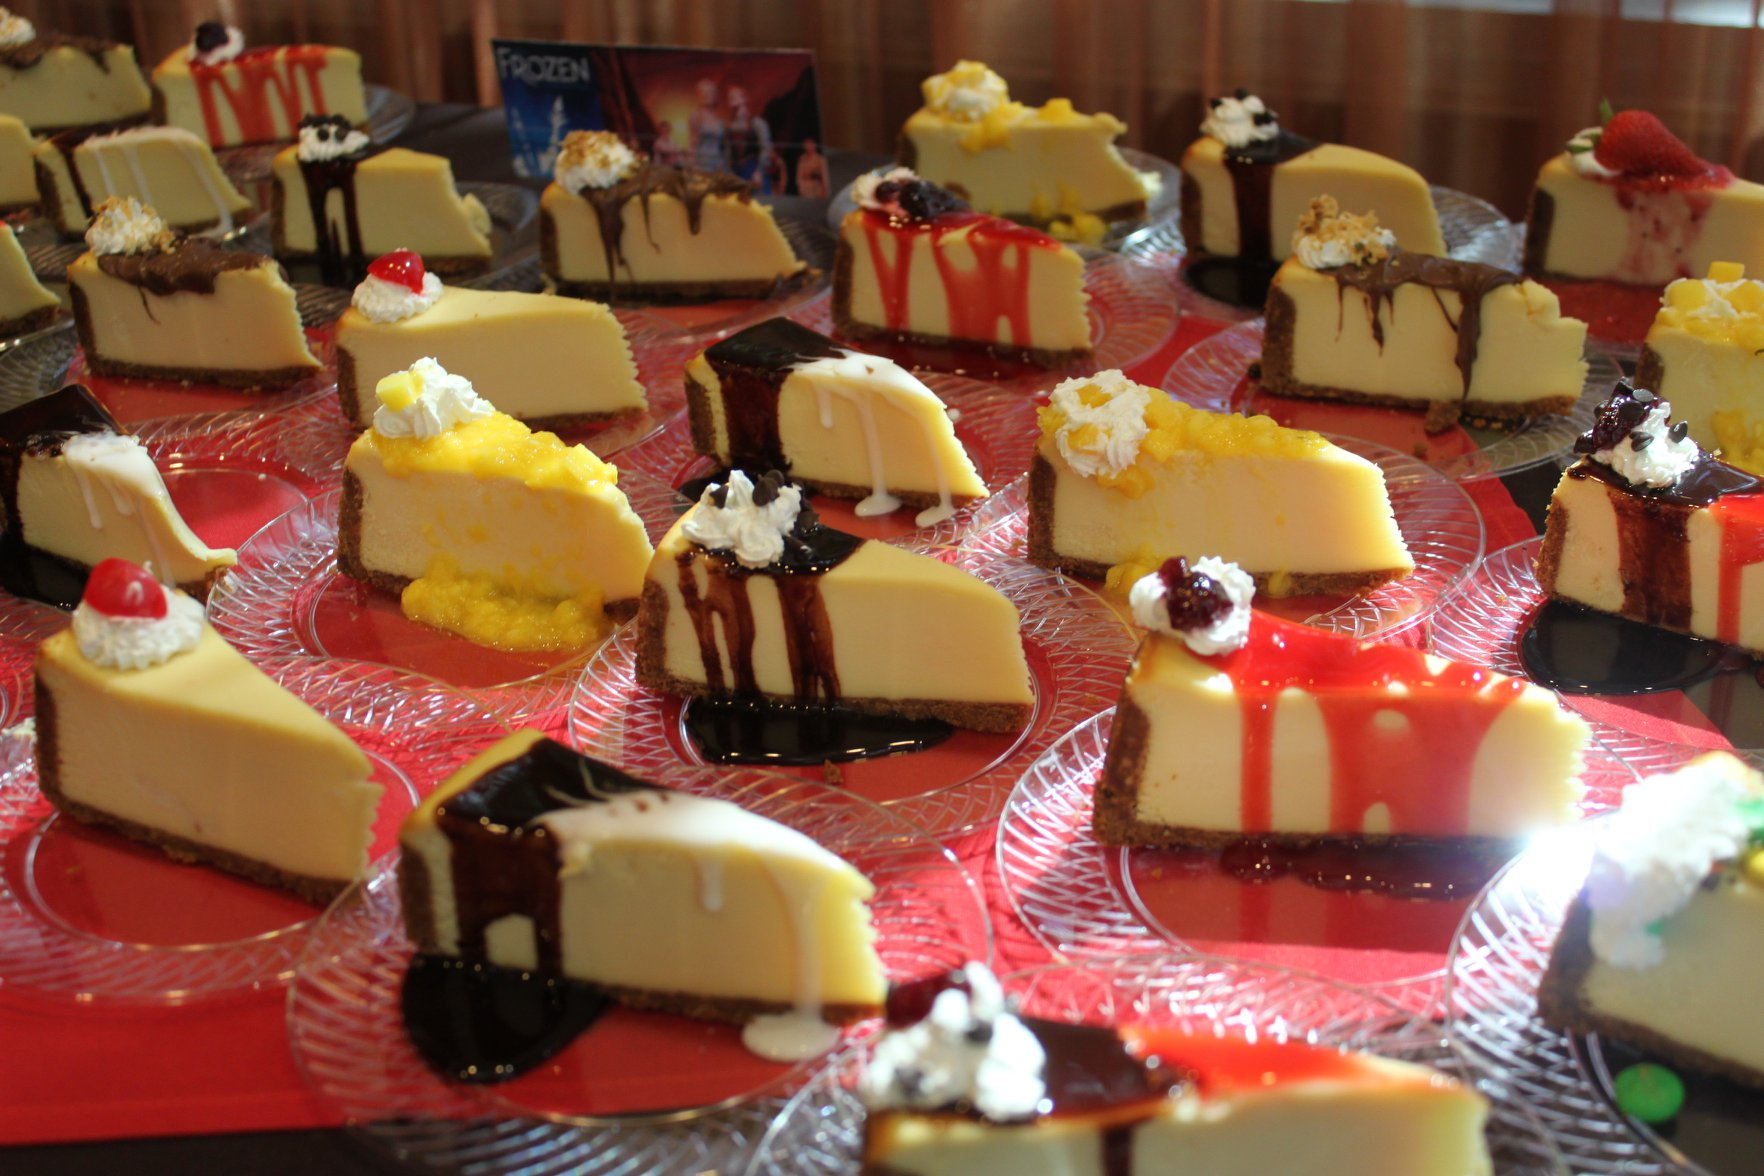 pieces of cheesecake on a table with various toppings